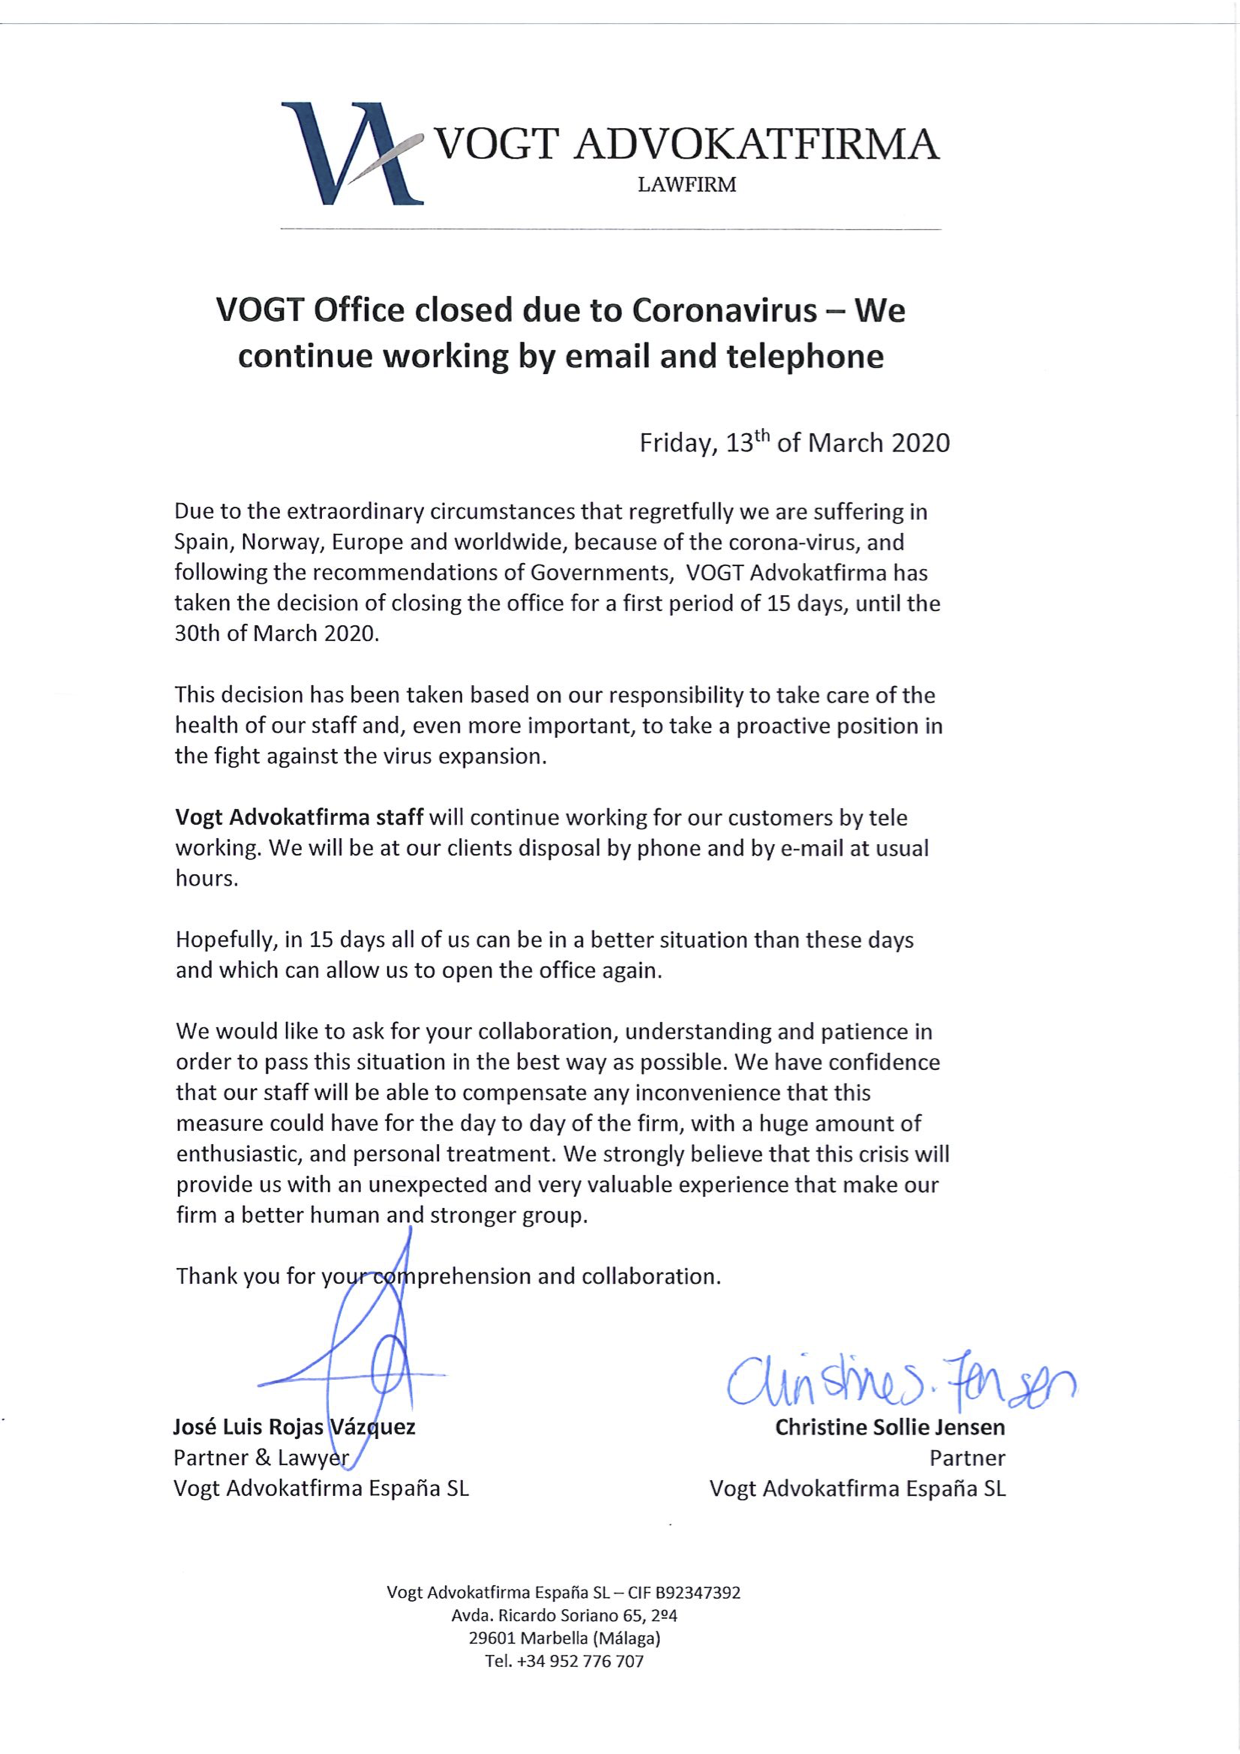 Vogt offices closed